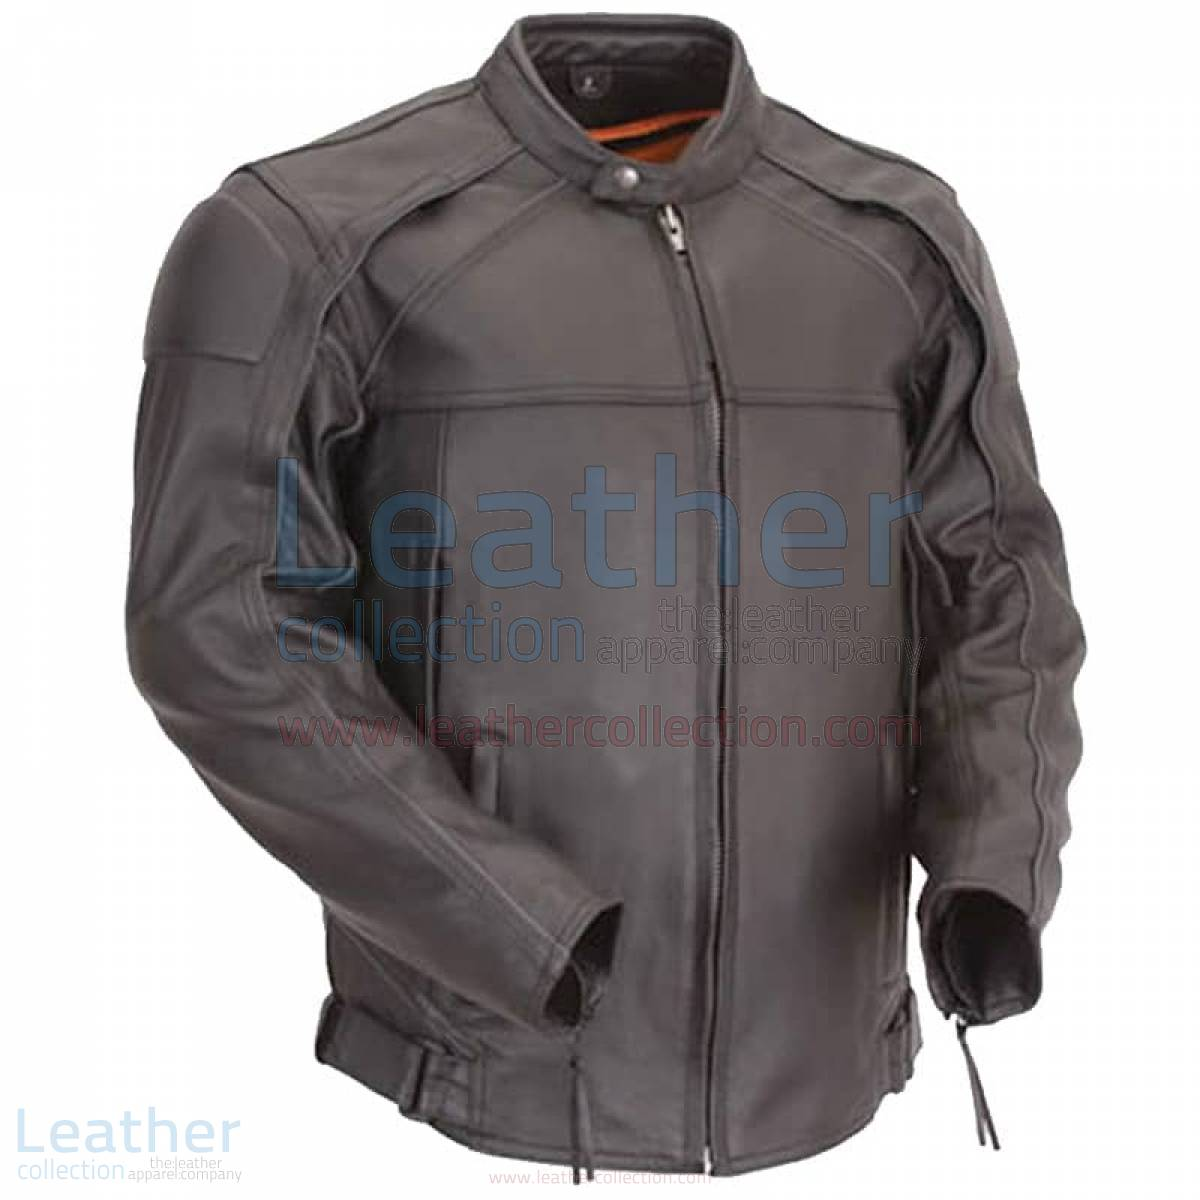 Leather Motorcycle Jacket with Reflective Piping –  Jacket